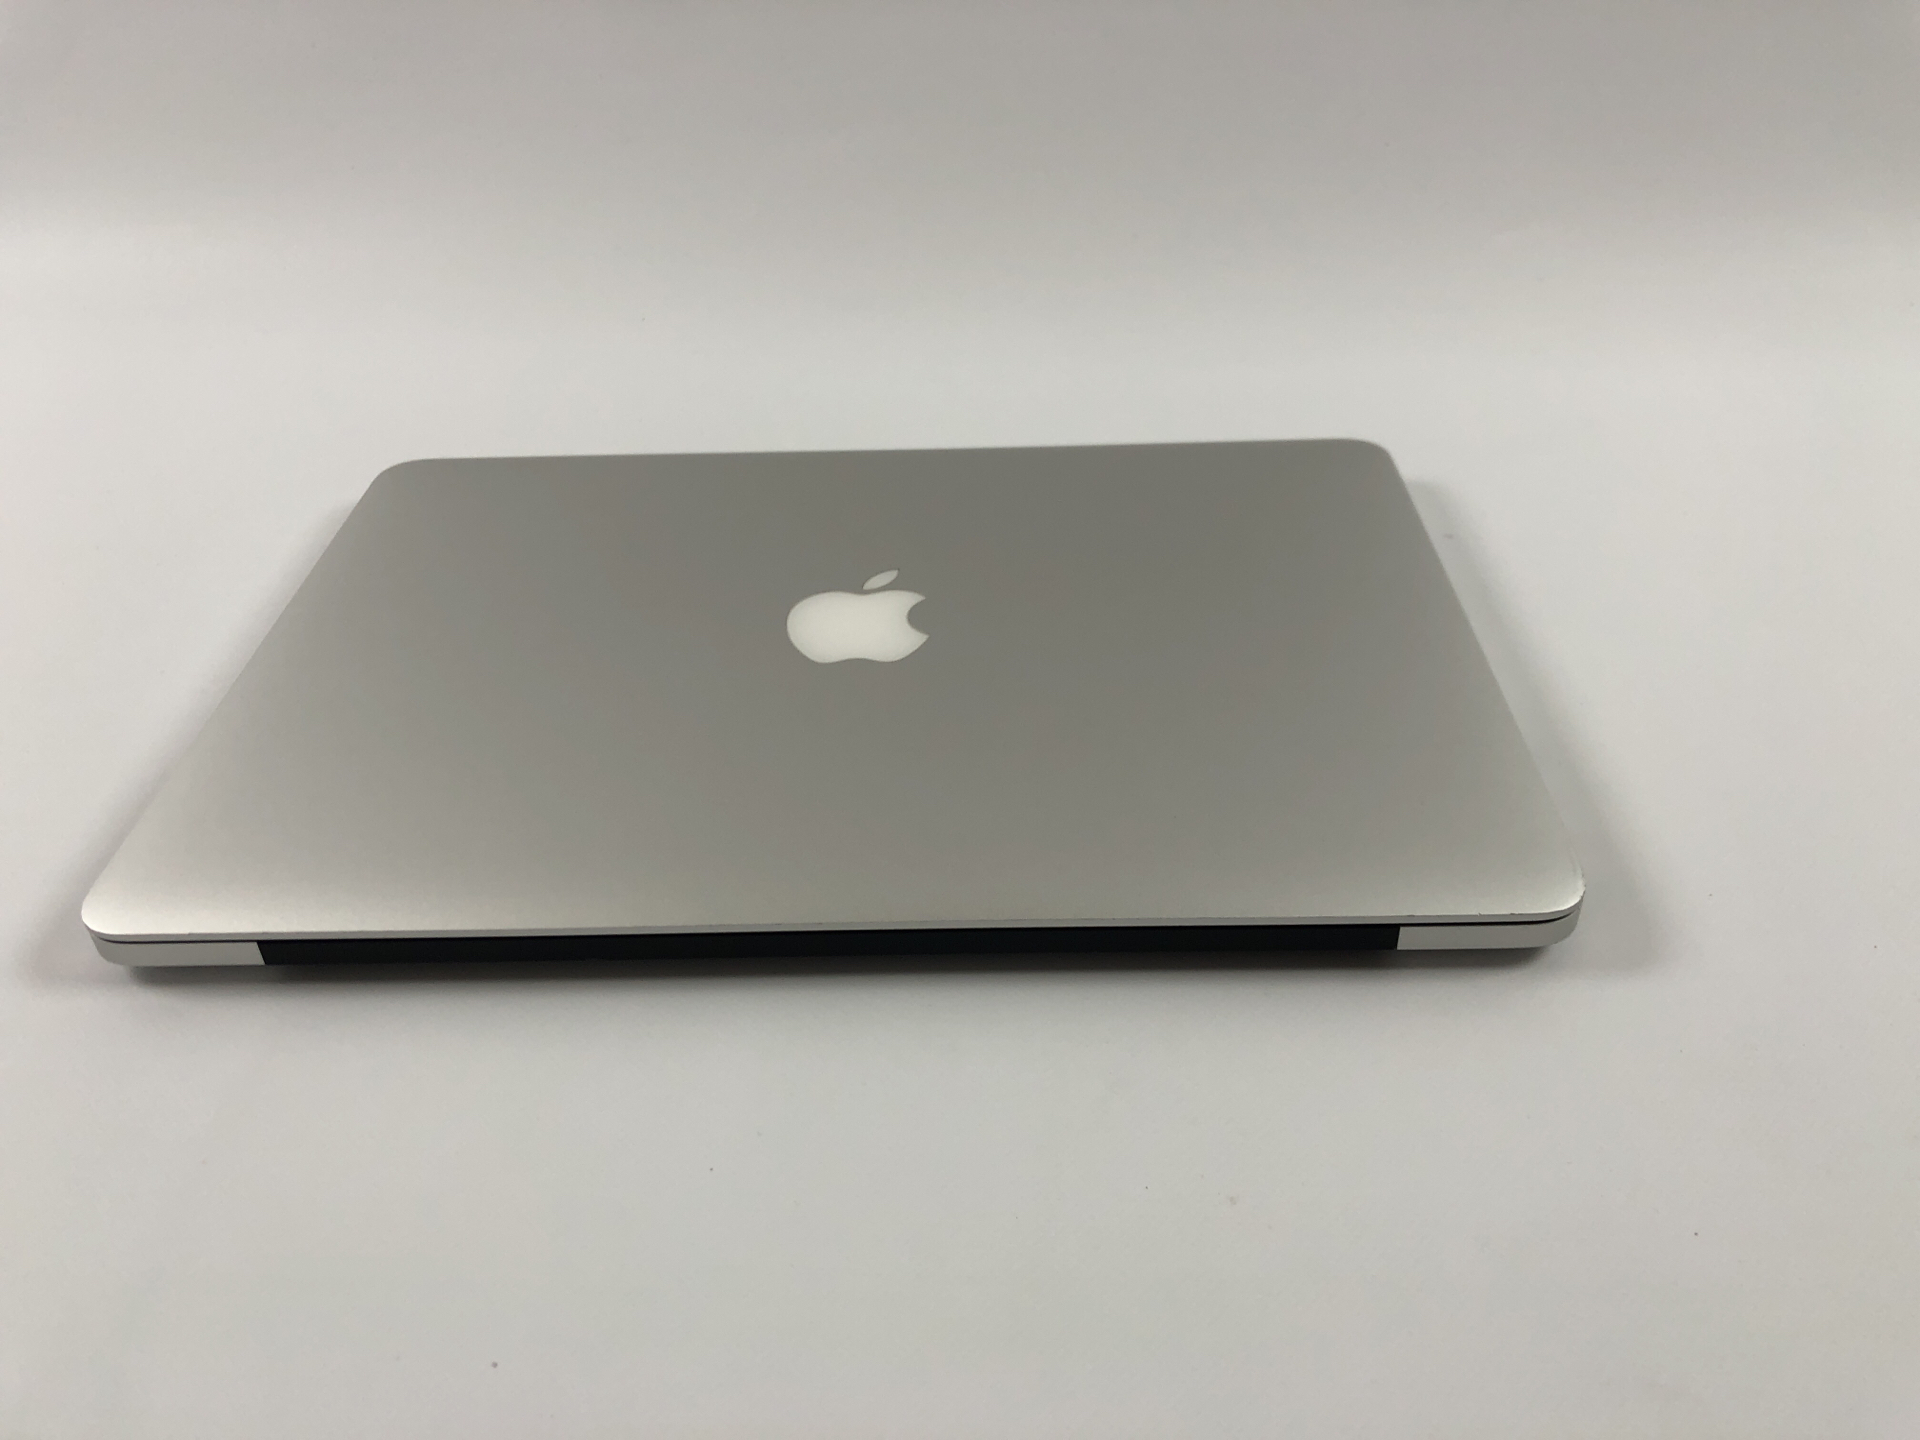 "MacBook Pro Retina 13"" Early 2015 (Intel Core i5 2.7 GHz 8 GB RAM 256 GB SSD), Intel Core i5 2.7 GHz, 8 GB RAM, 256 GB SSD, Kuva 3"